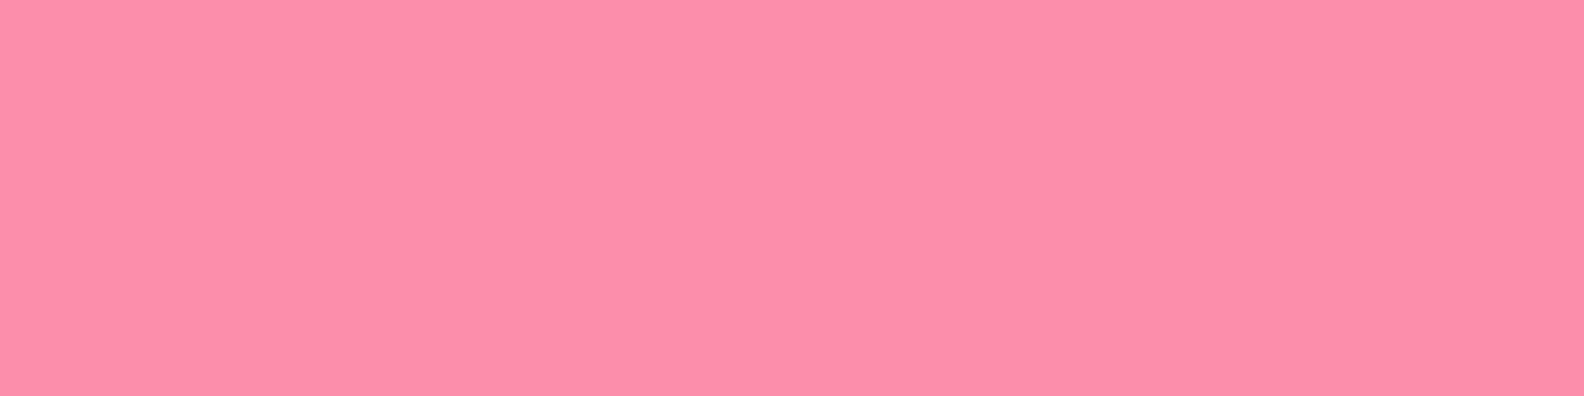 1584x396 Flamingo Pink Solid Color Background